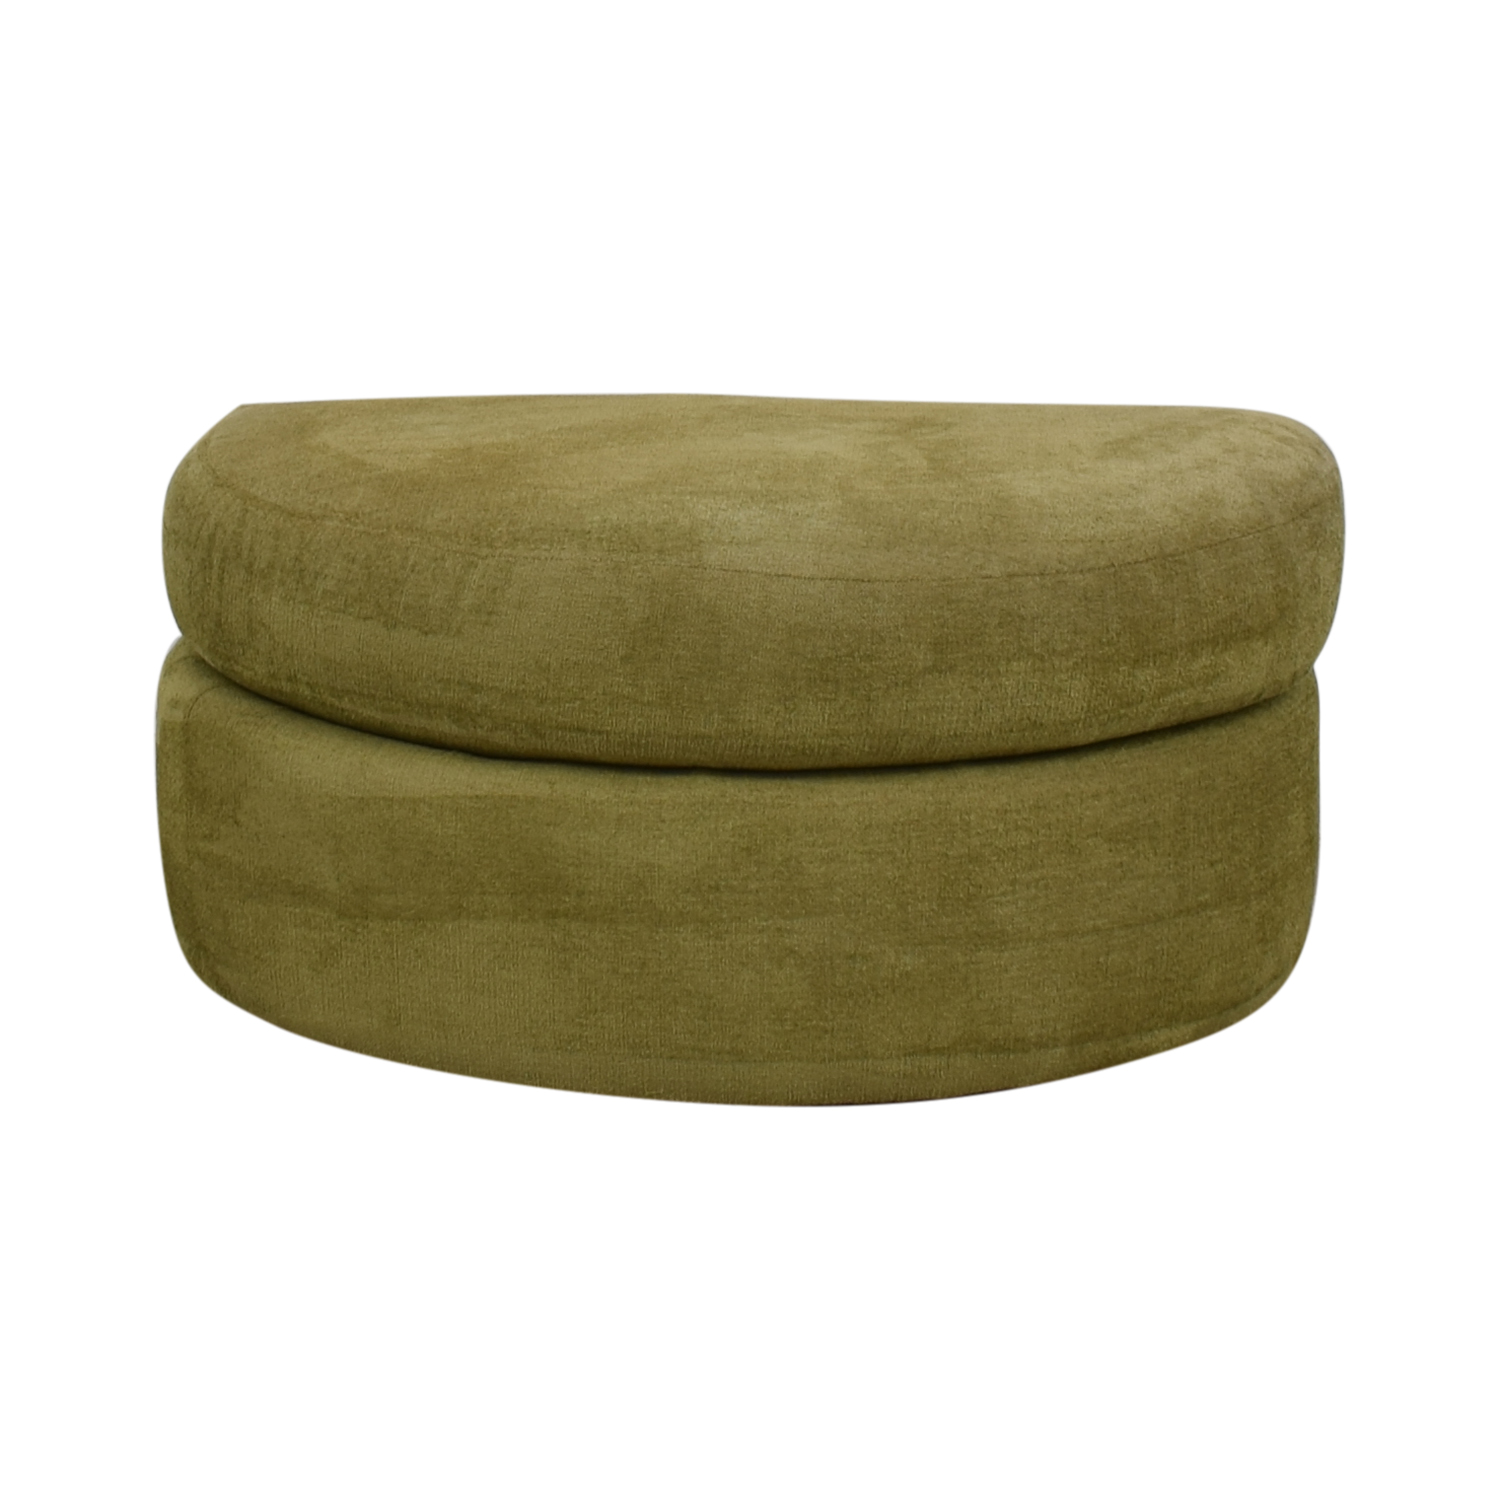 Swaim Furniture Swaim Furniture Green Half Circle Ottoman used